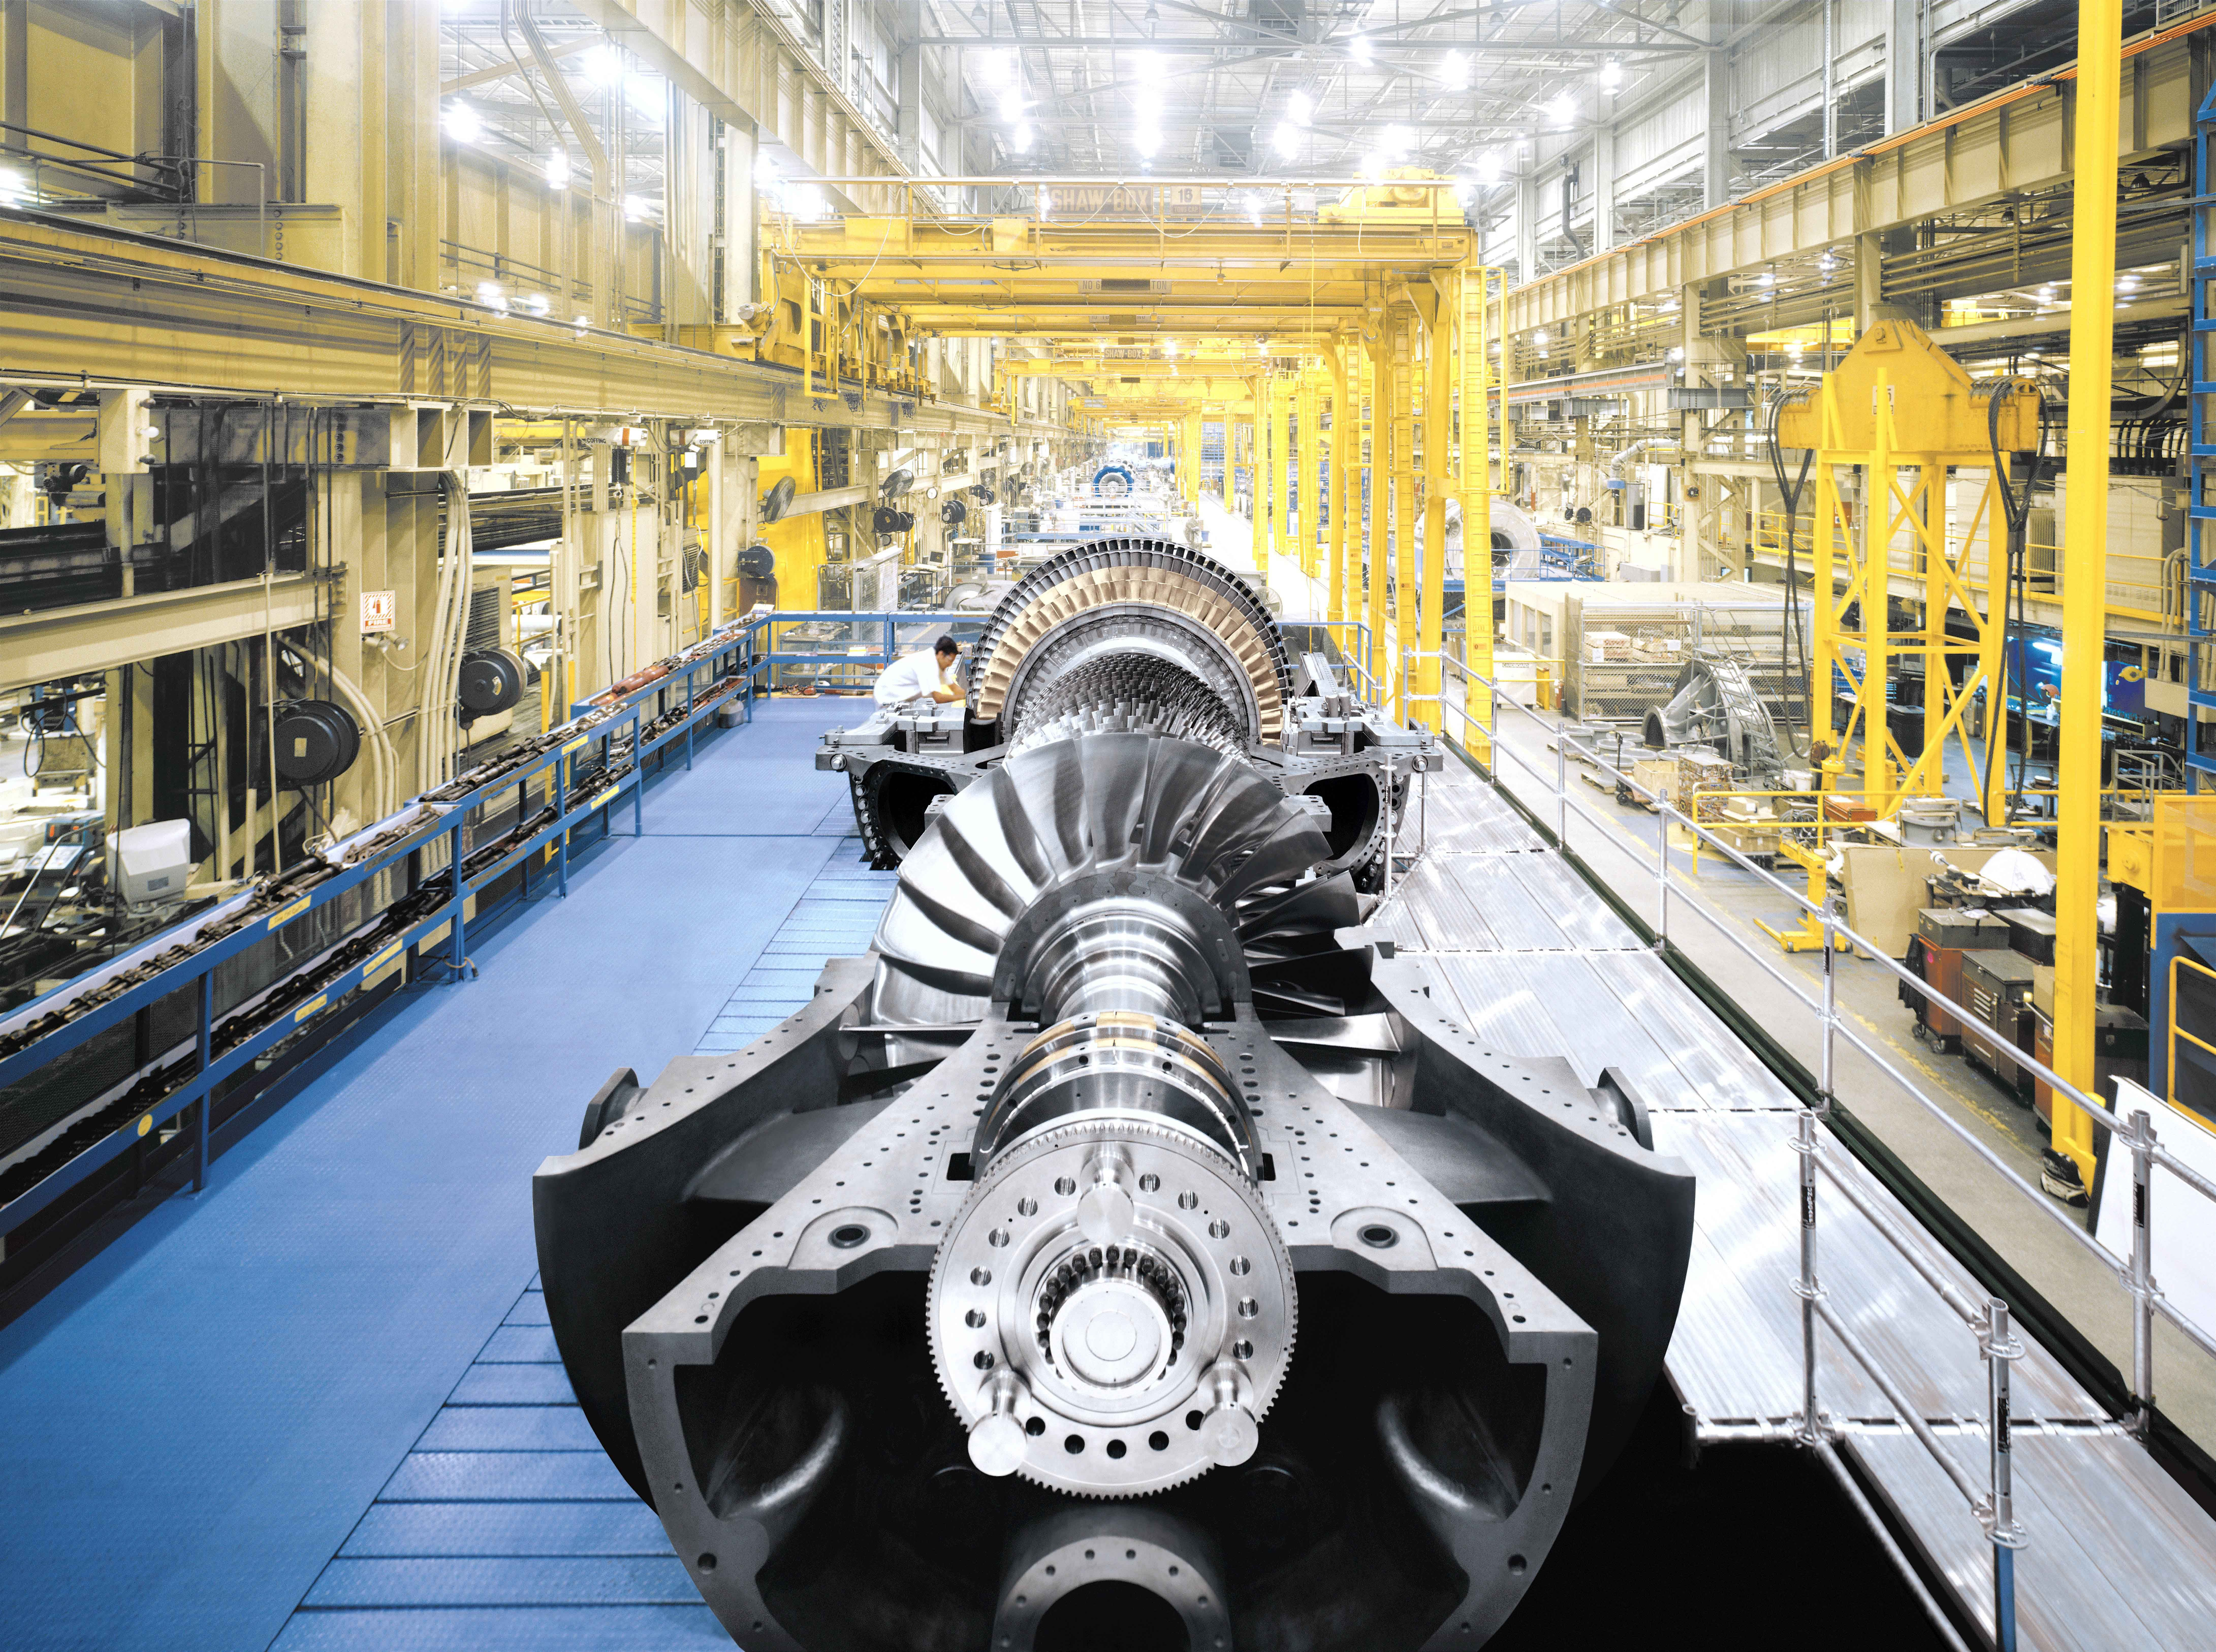 GE s H System™ is one of the most advanced gas turbine bined